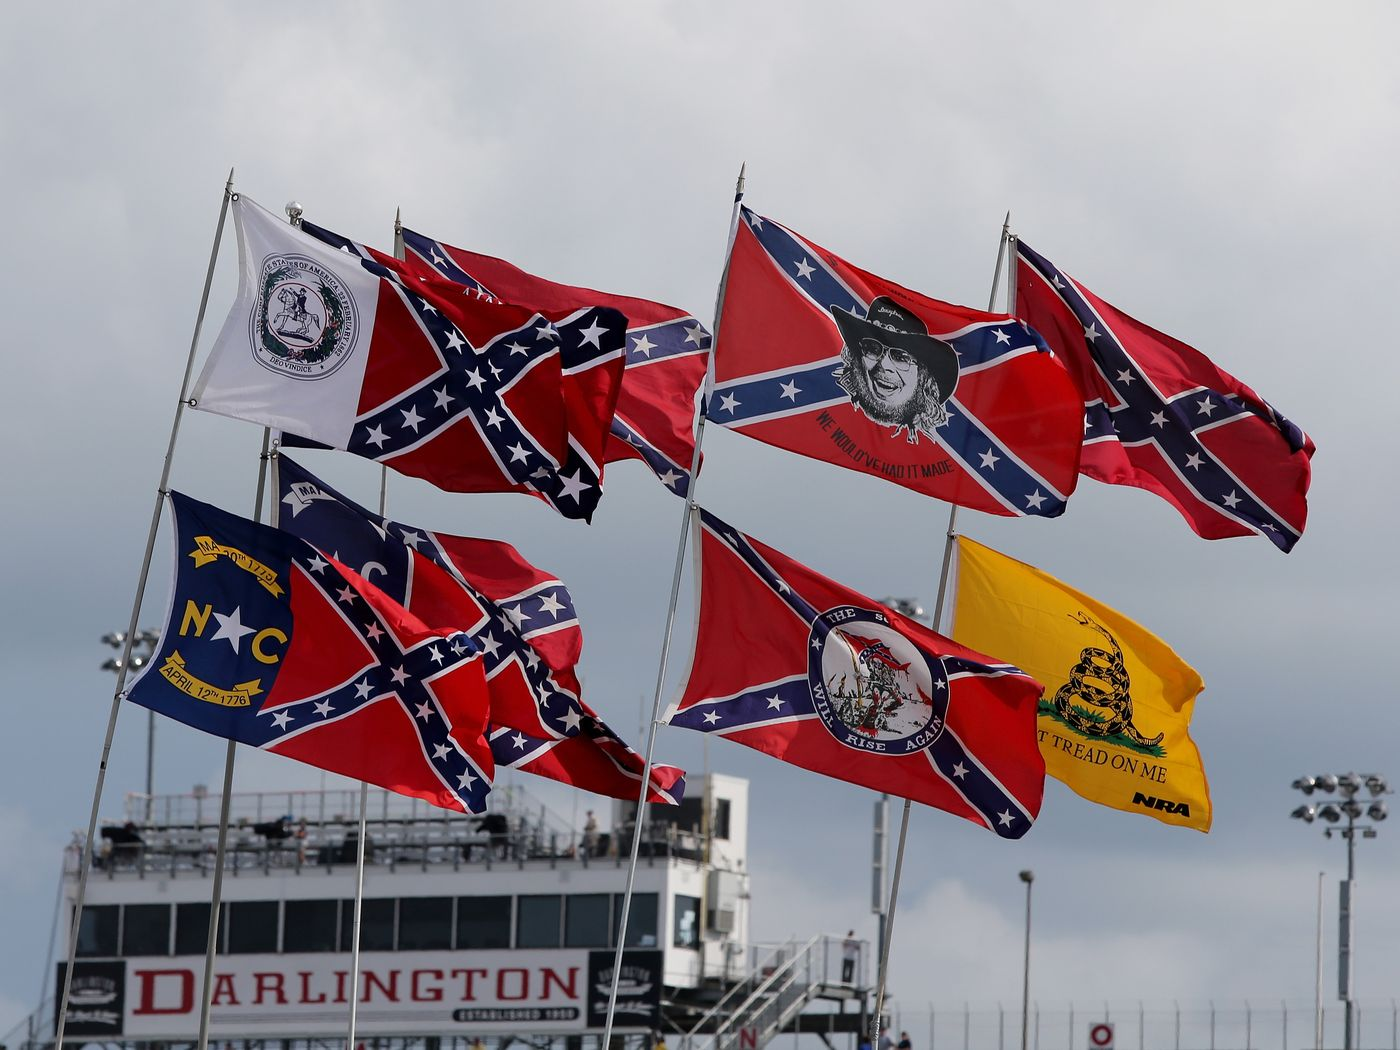 Will NASCAR risk losing half their fanbase by banning the Confederate Flag for Bubba Wallace?